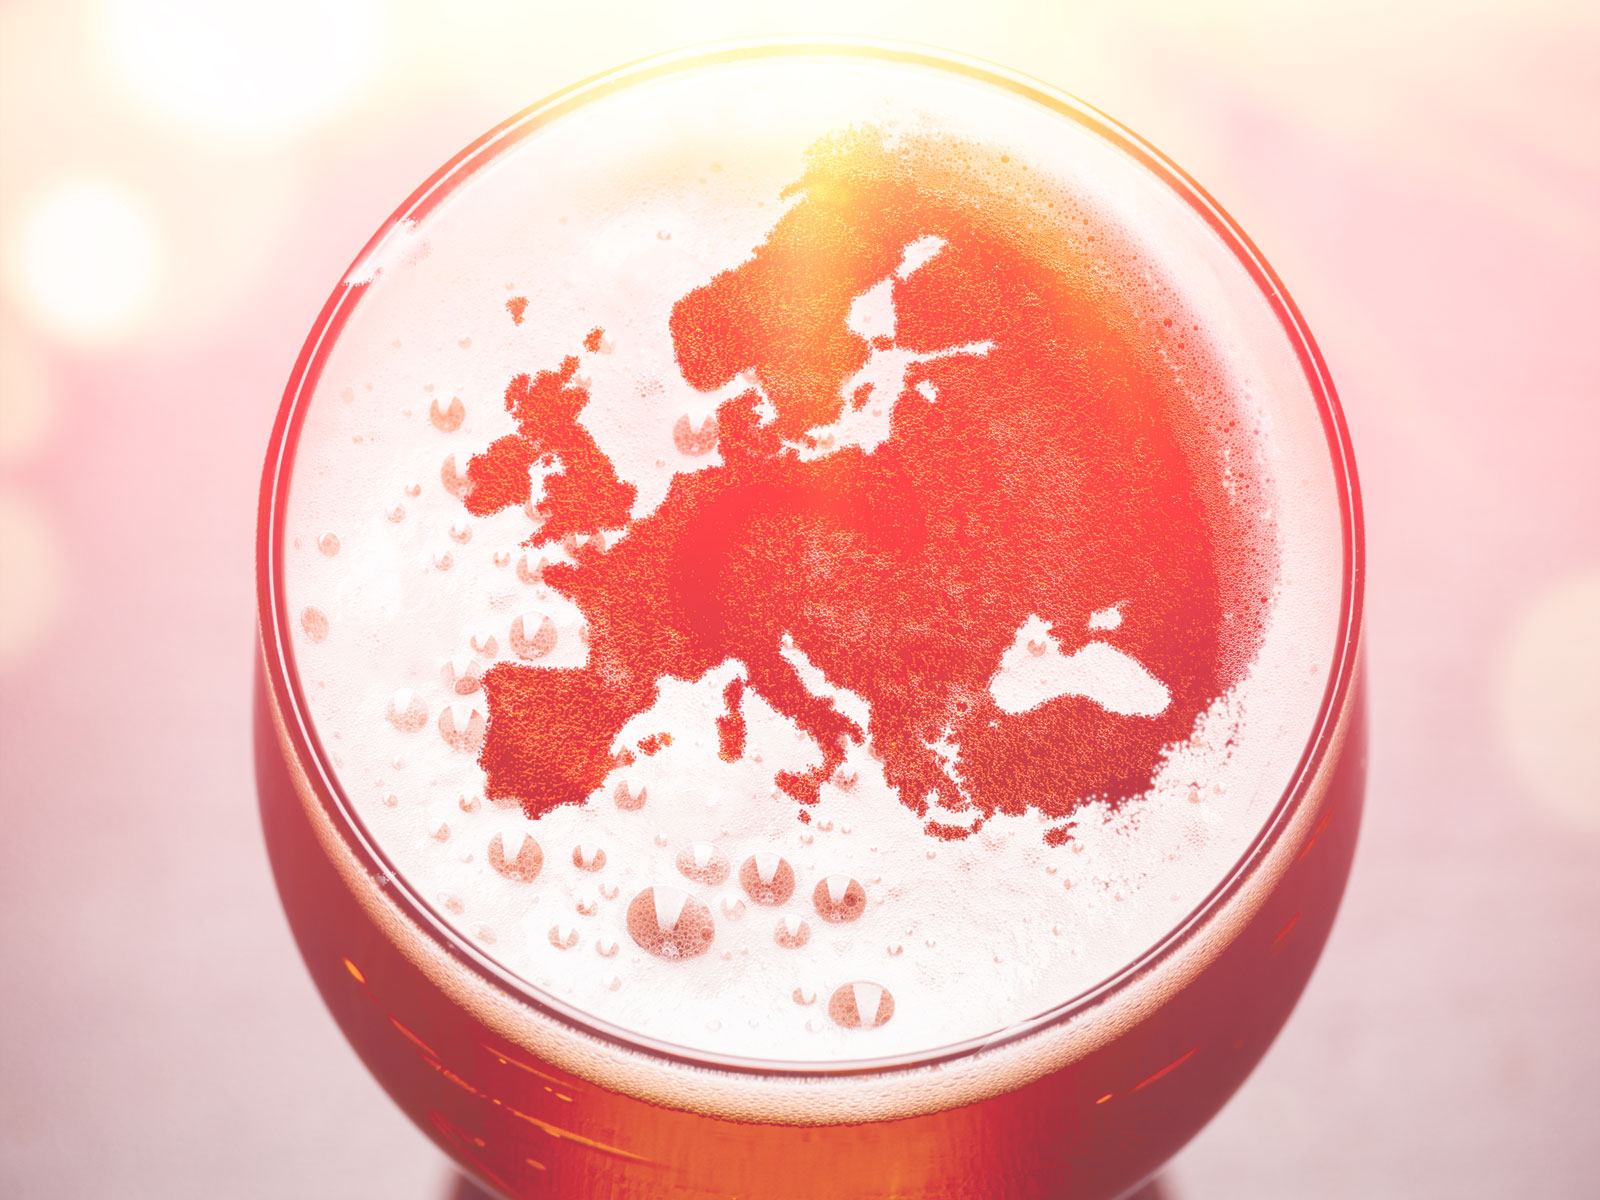 beer-producing-countries-europe-FT-BLOG1218.jpg